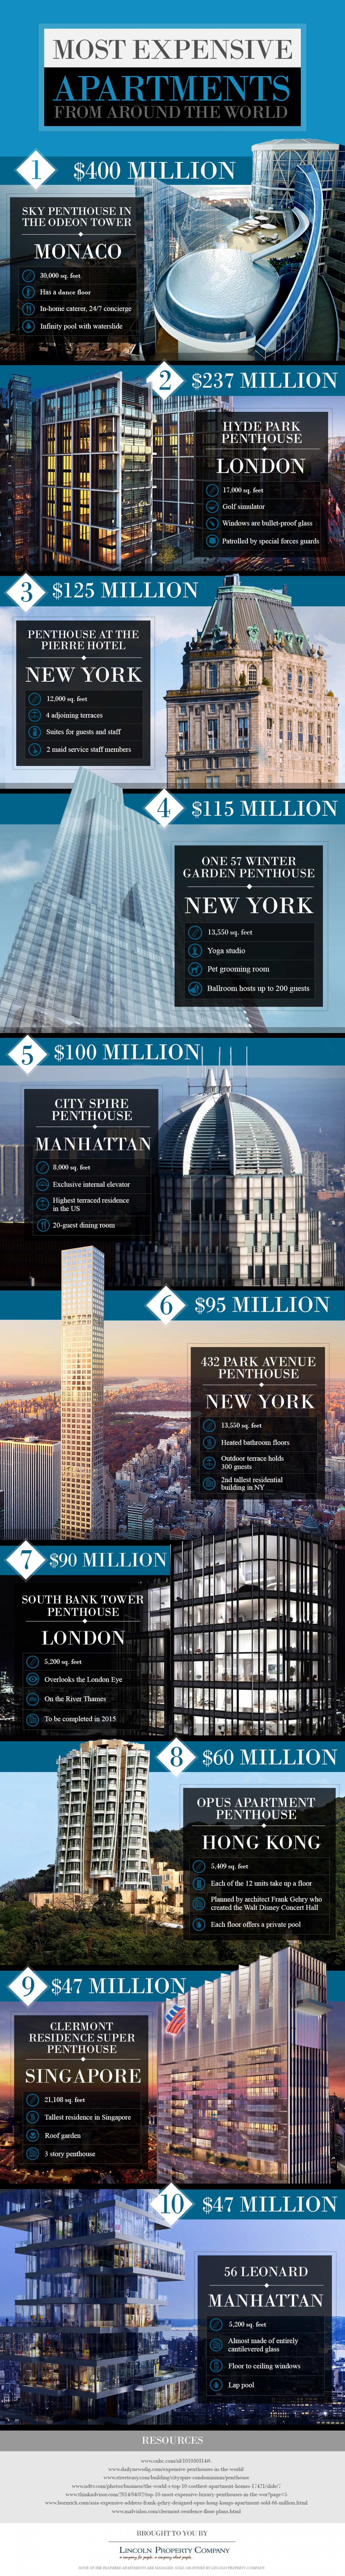 top-10-most-expensive-apartments-around-the-world_547f5de7b5f39_w1500